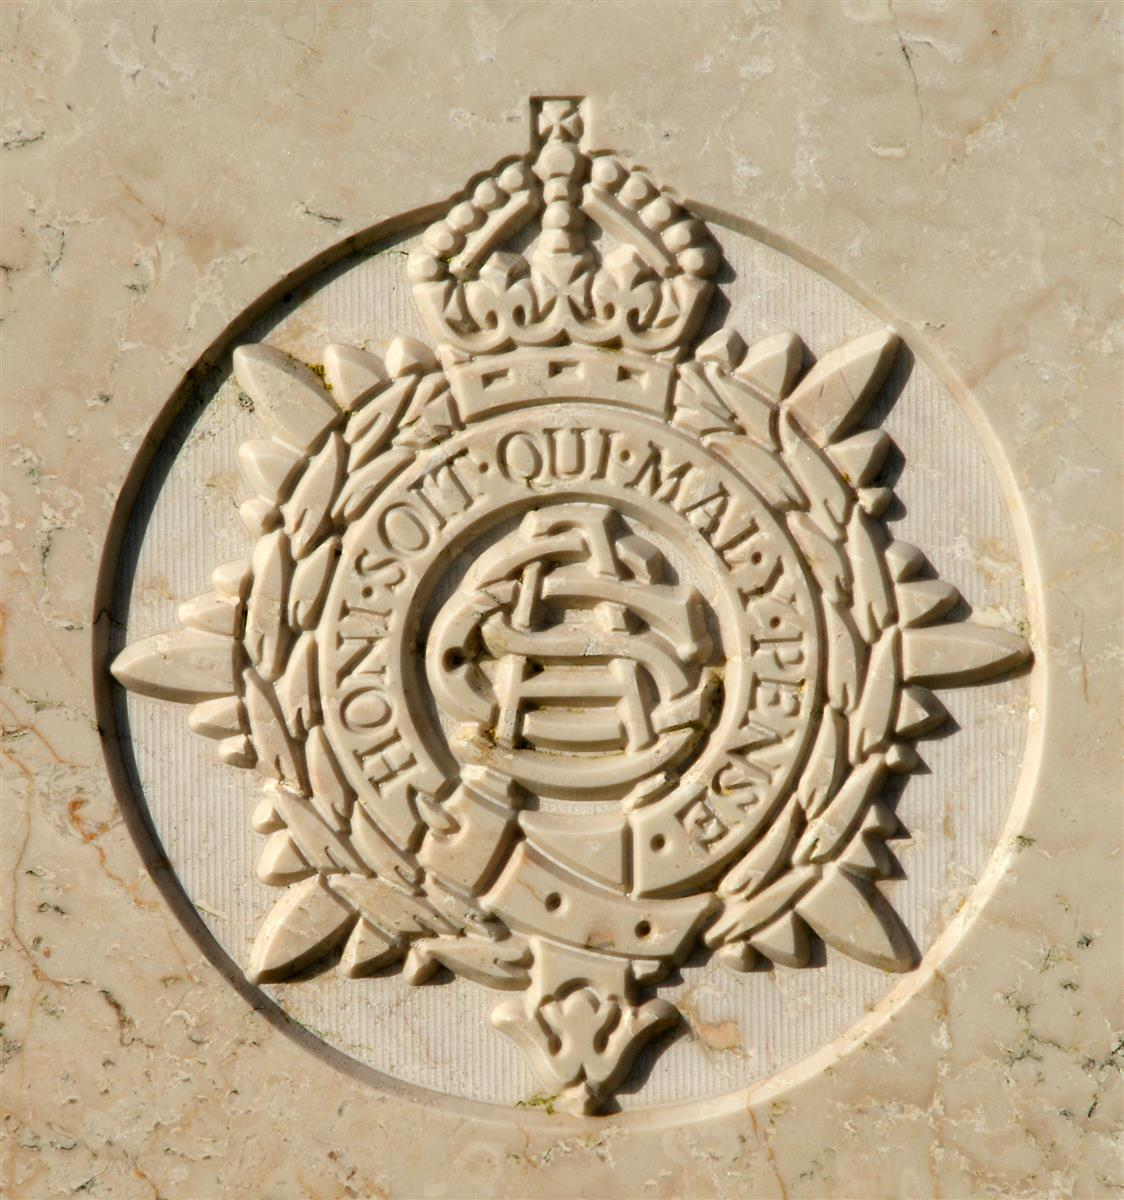 Army Service Corps badge